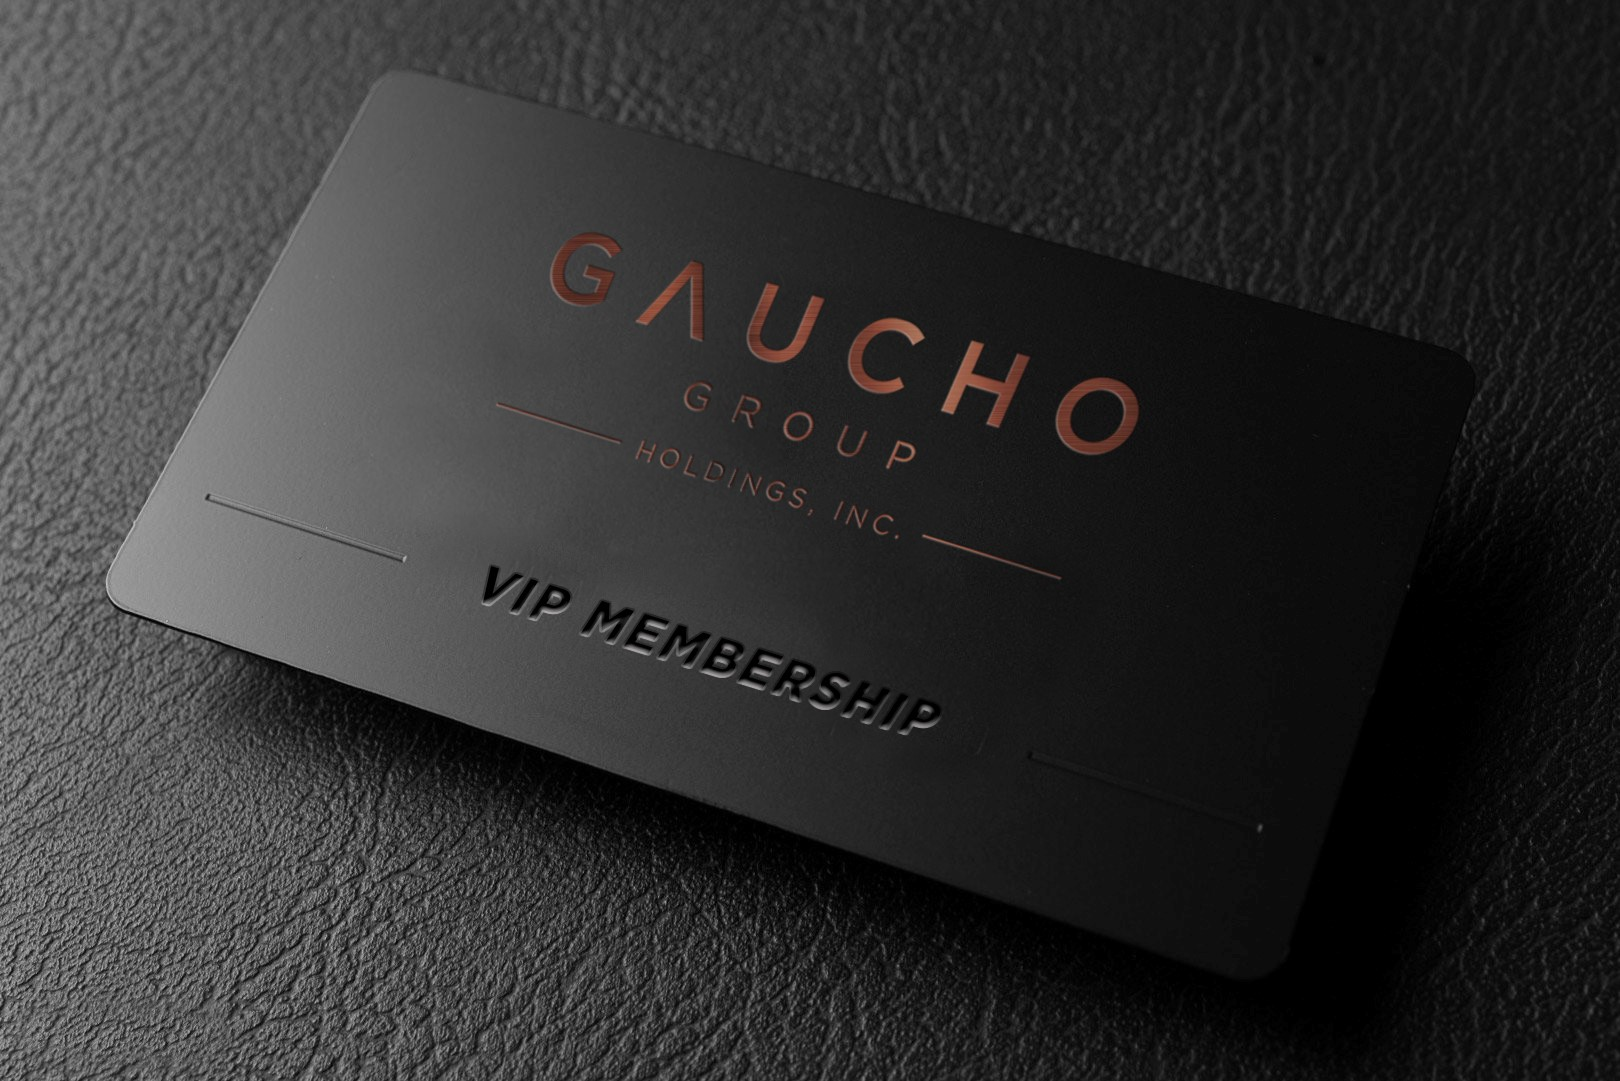 gaucho_holdings_shareholders_club_card v2.jpg